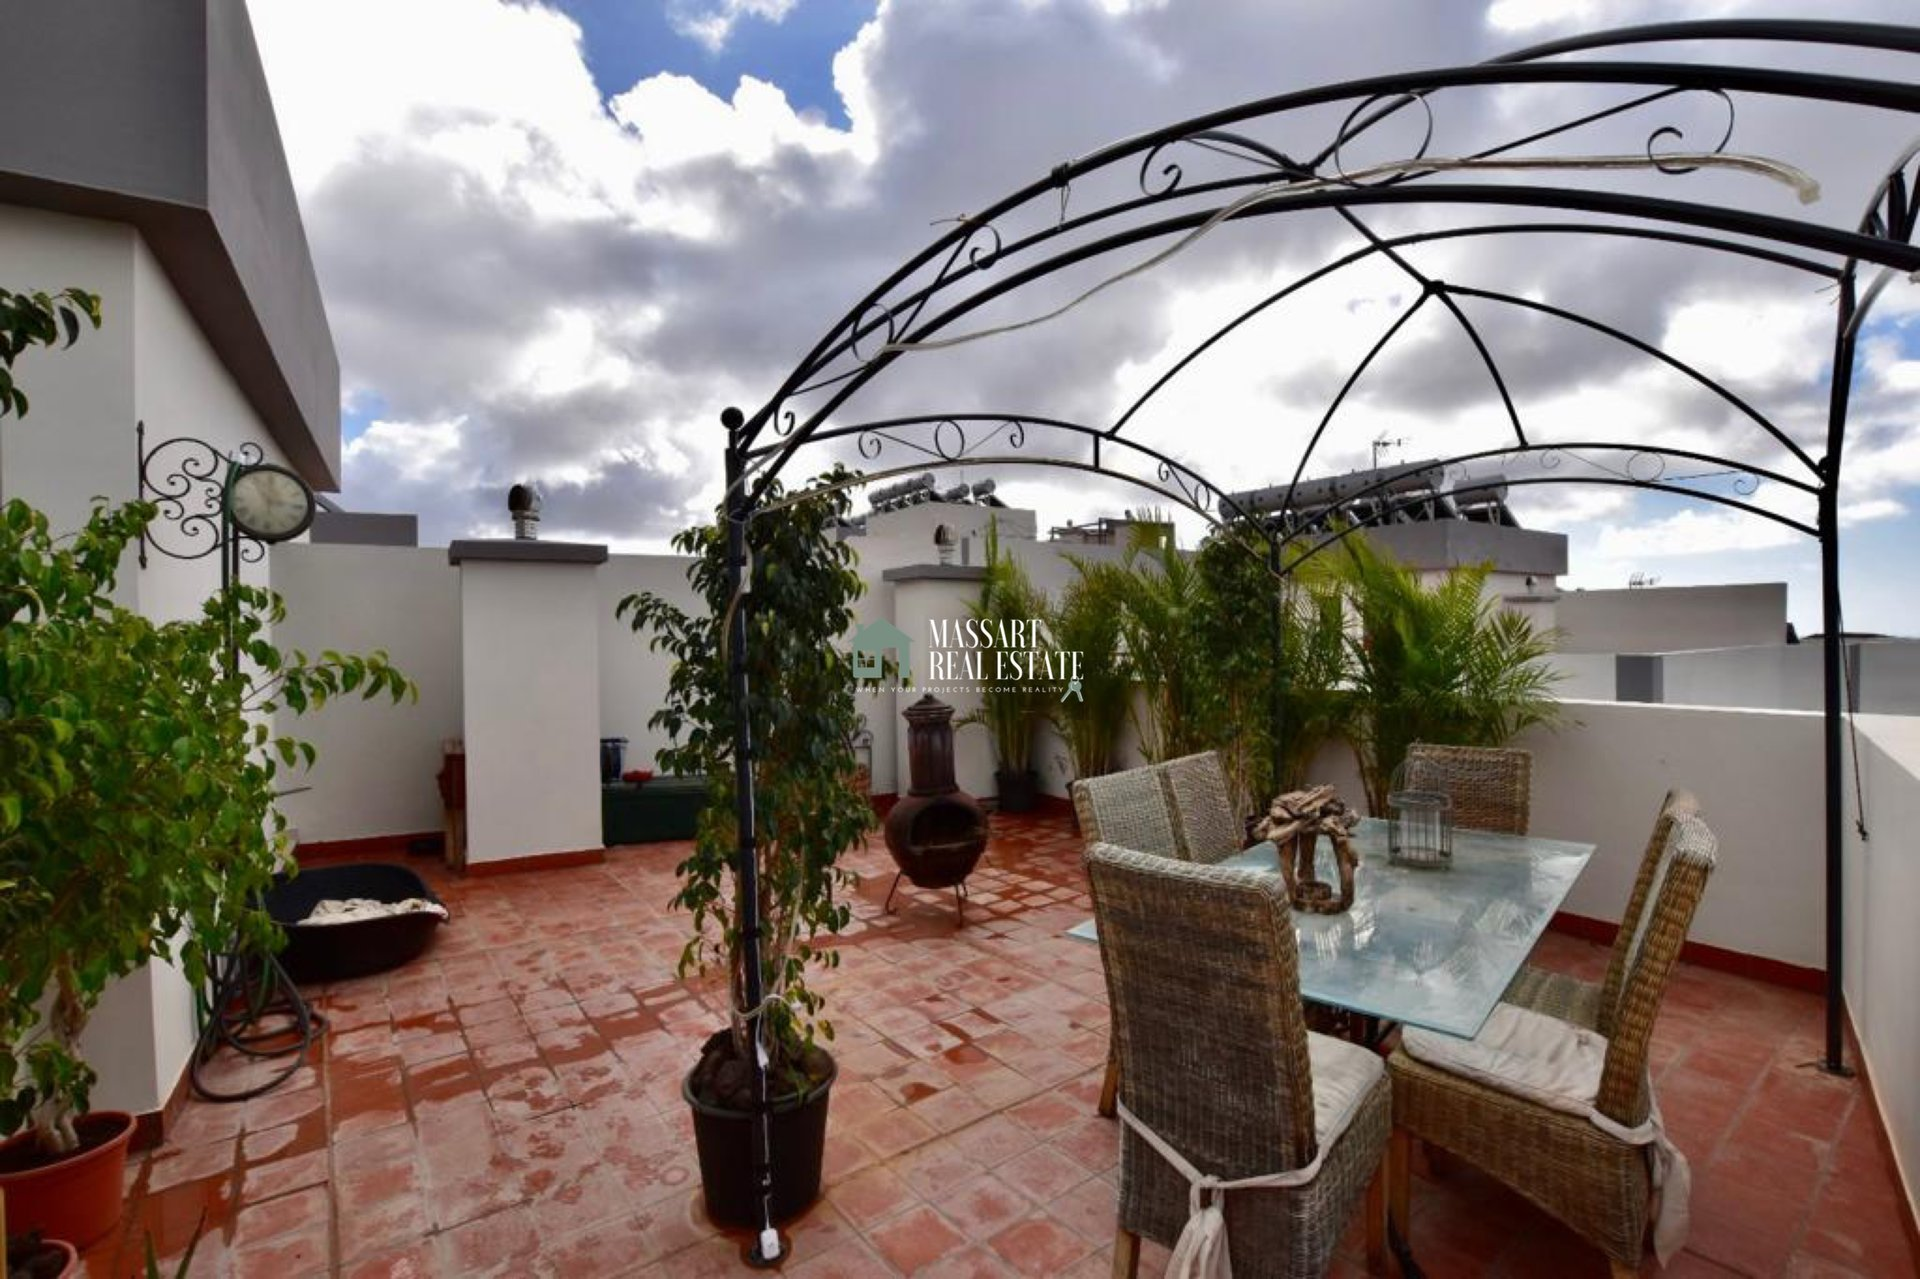 Penthouse of 144 m2 practically BRAND NEW in the strategic and quiet area of Buzanada characterized by offering dreamy views of the sea and the mountains.